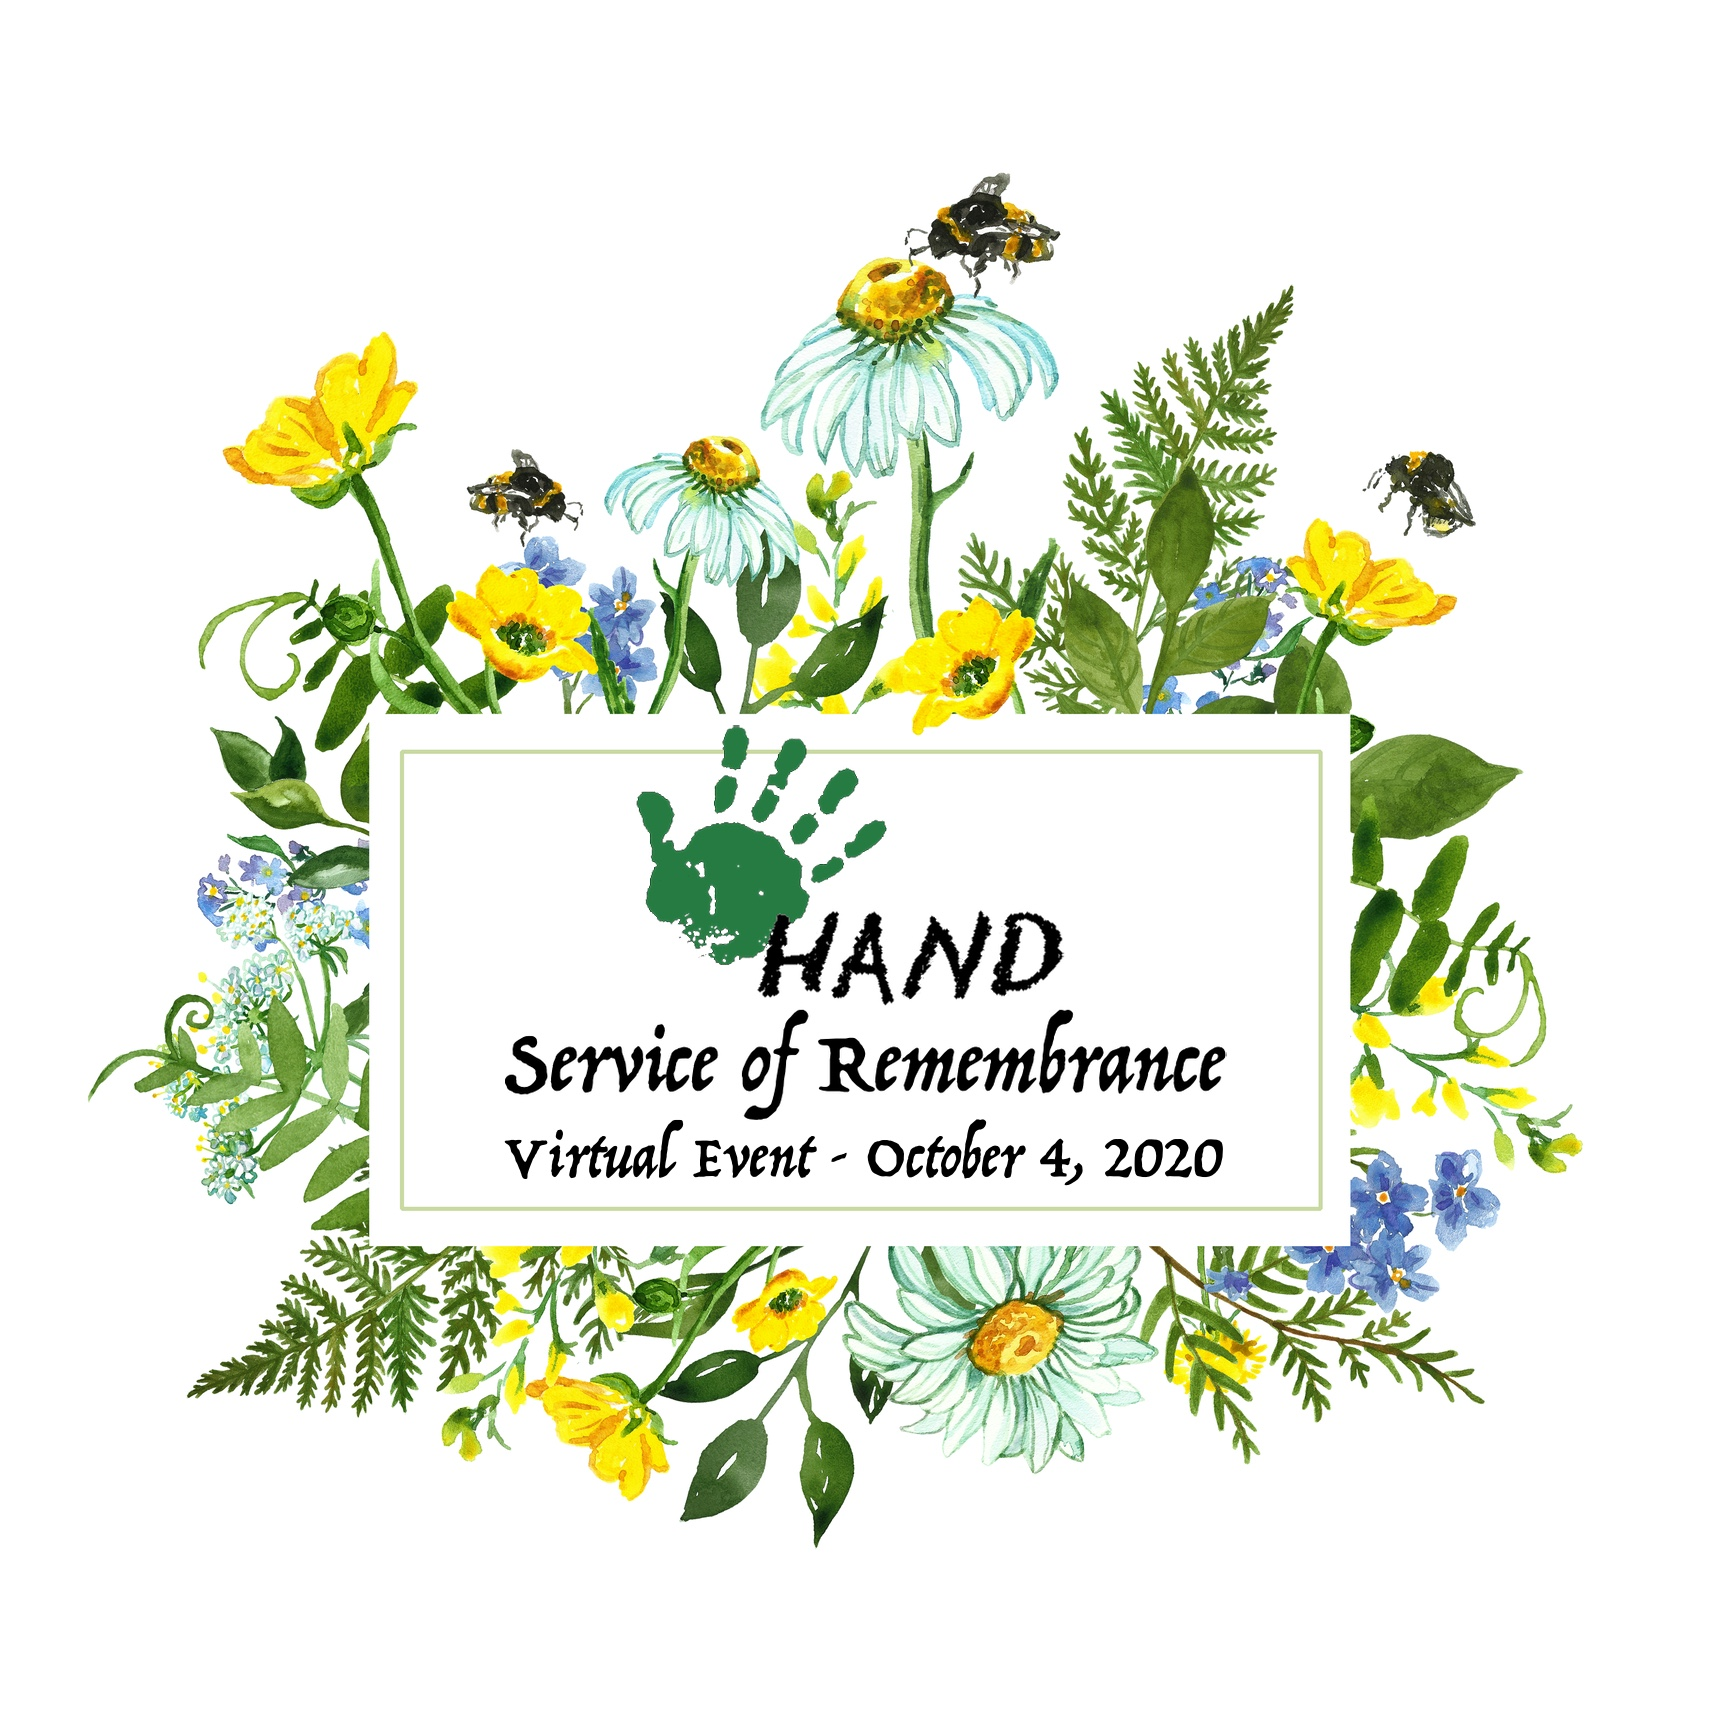 HAND Service of Remembrance Virtual Event - October 4, 2020